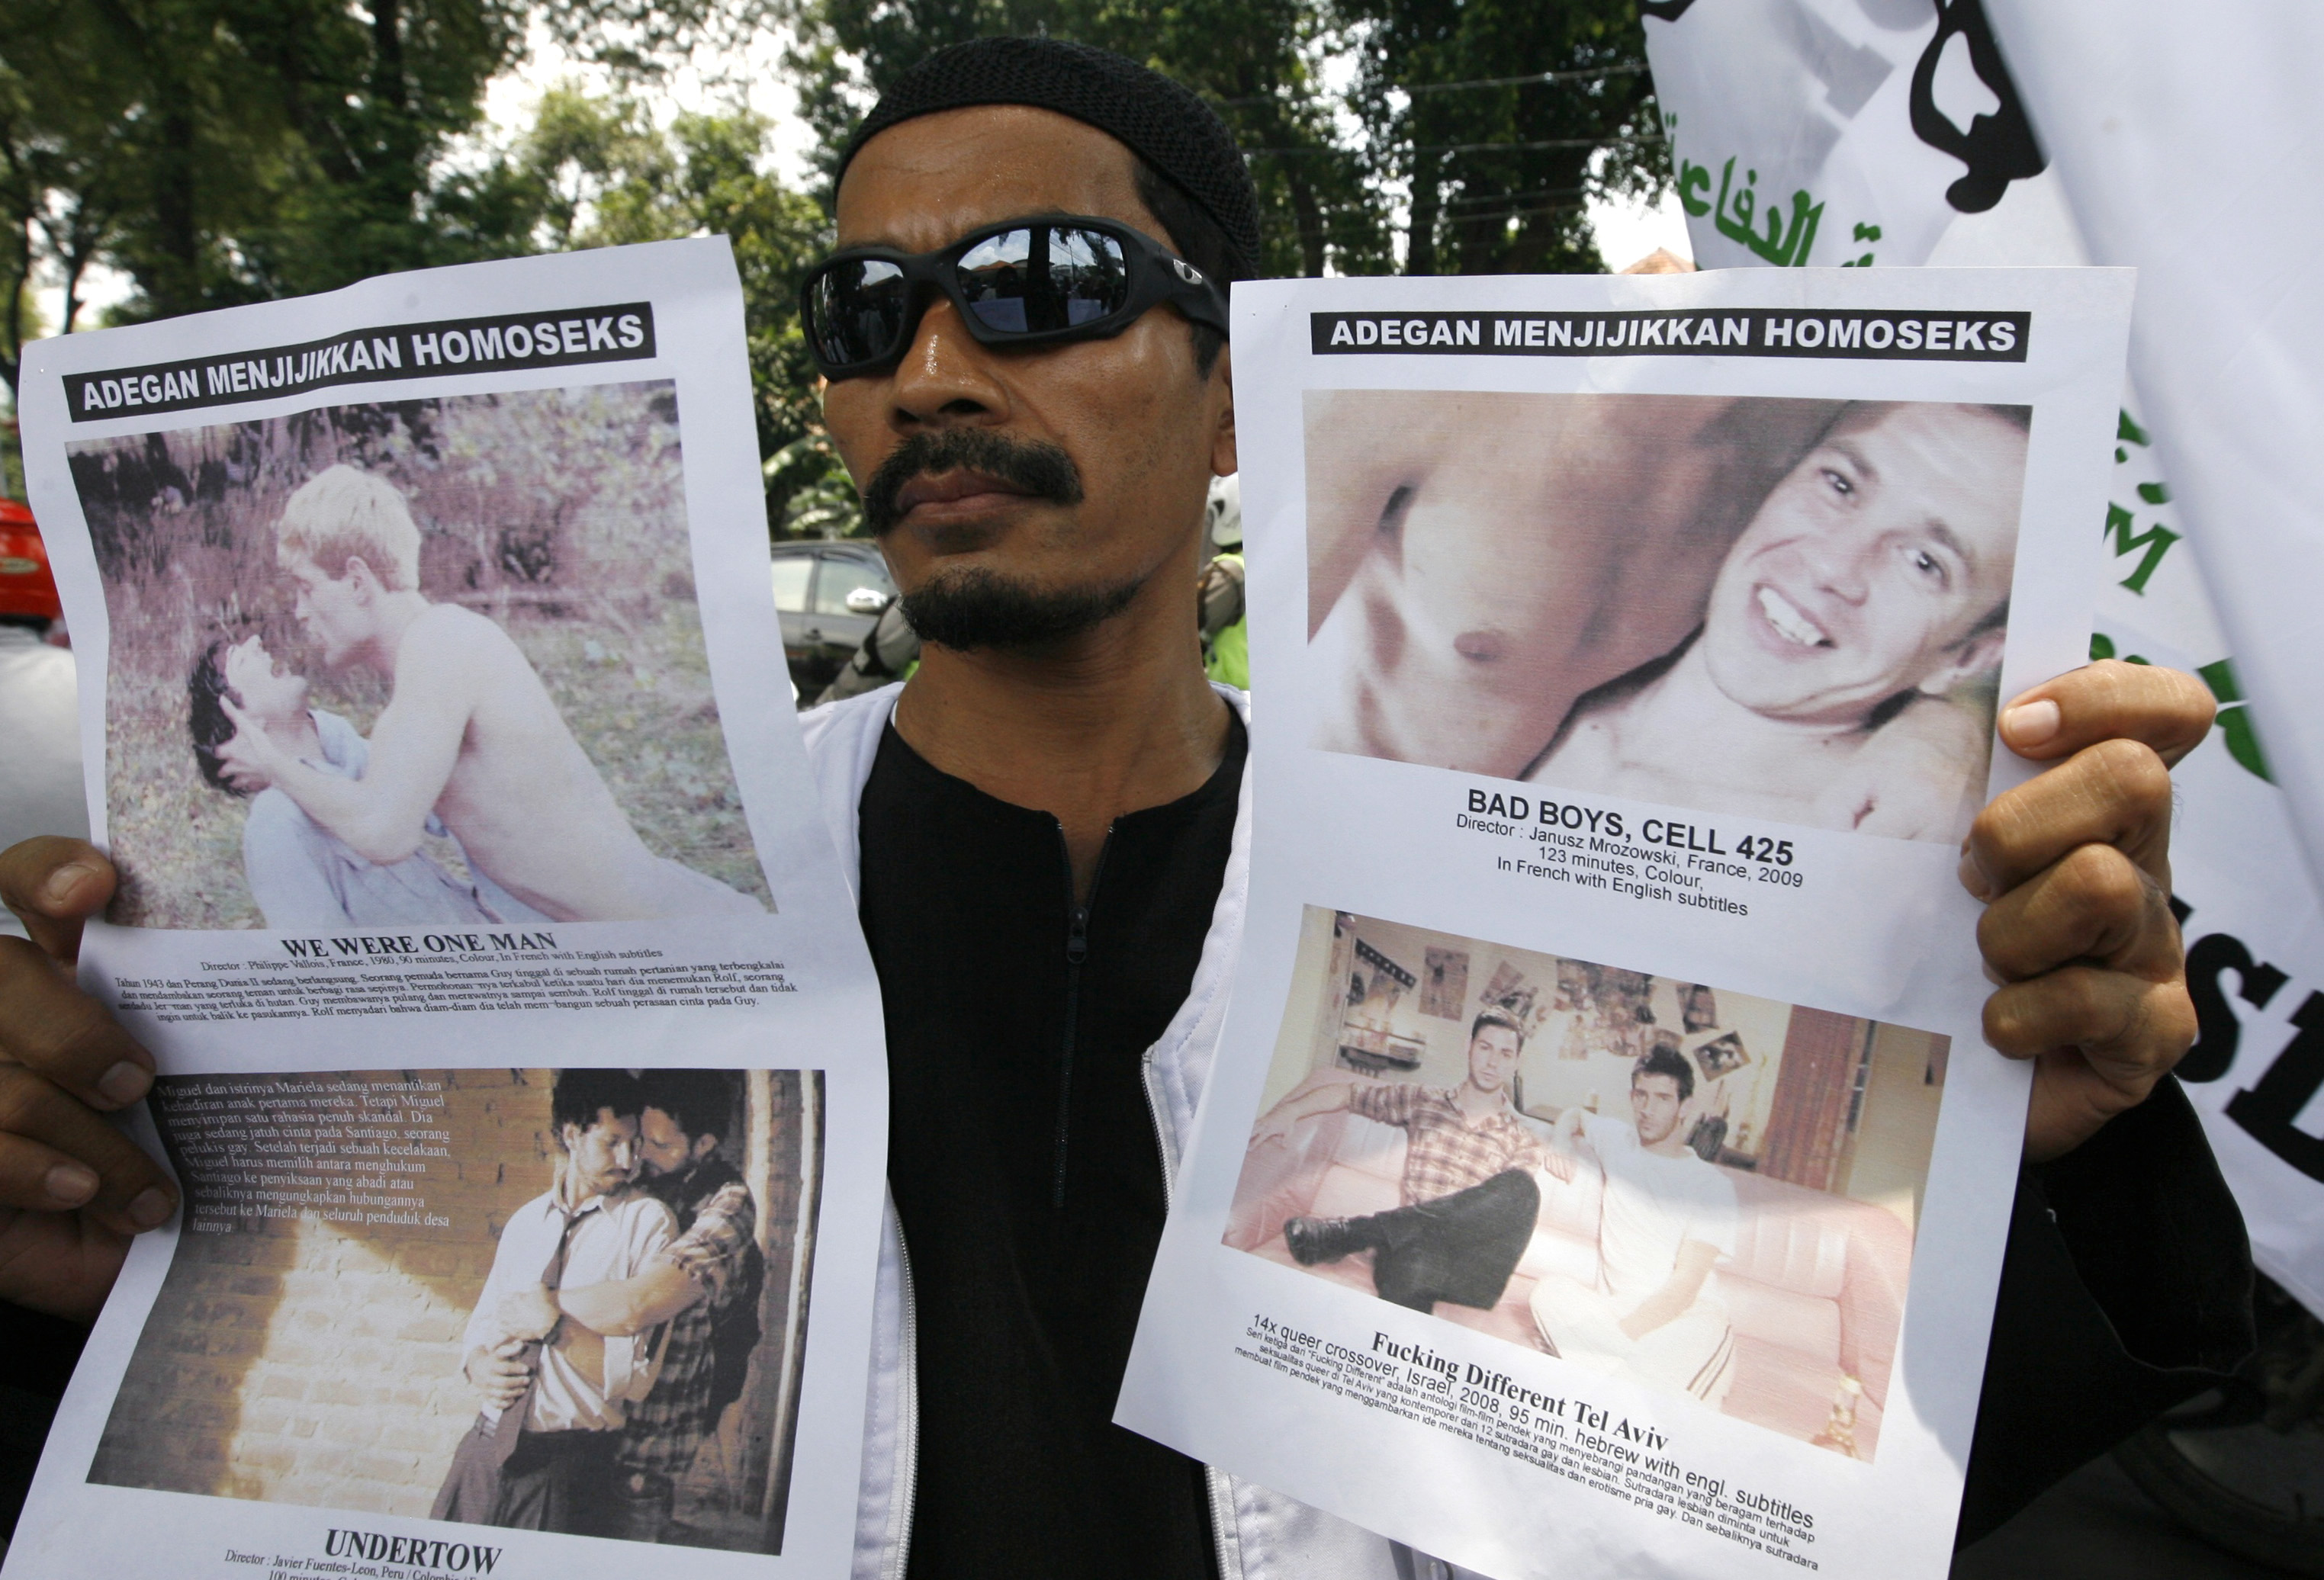 A member of the Islamic Defenders Front (FPI) holds up posters protesting against films screened at the Q! Film Festival during a protest in front of GoetheHaus in Jakarta, Sep. 28, 2010. The gay and lesbian community in Indonesia has been facing dis...